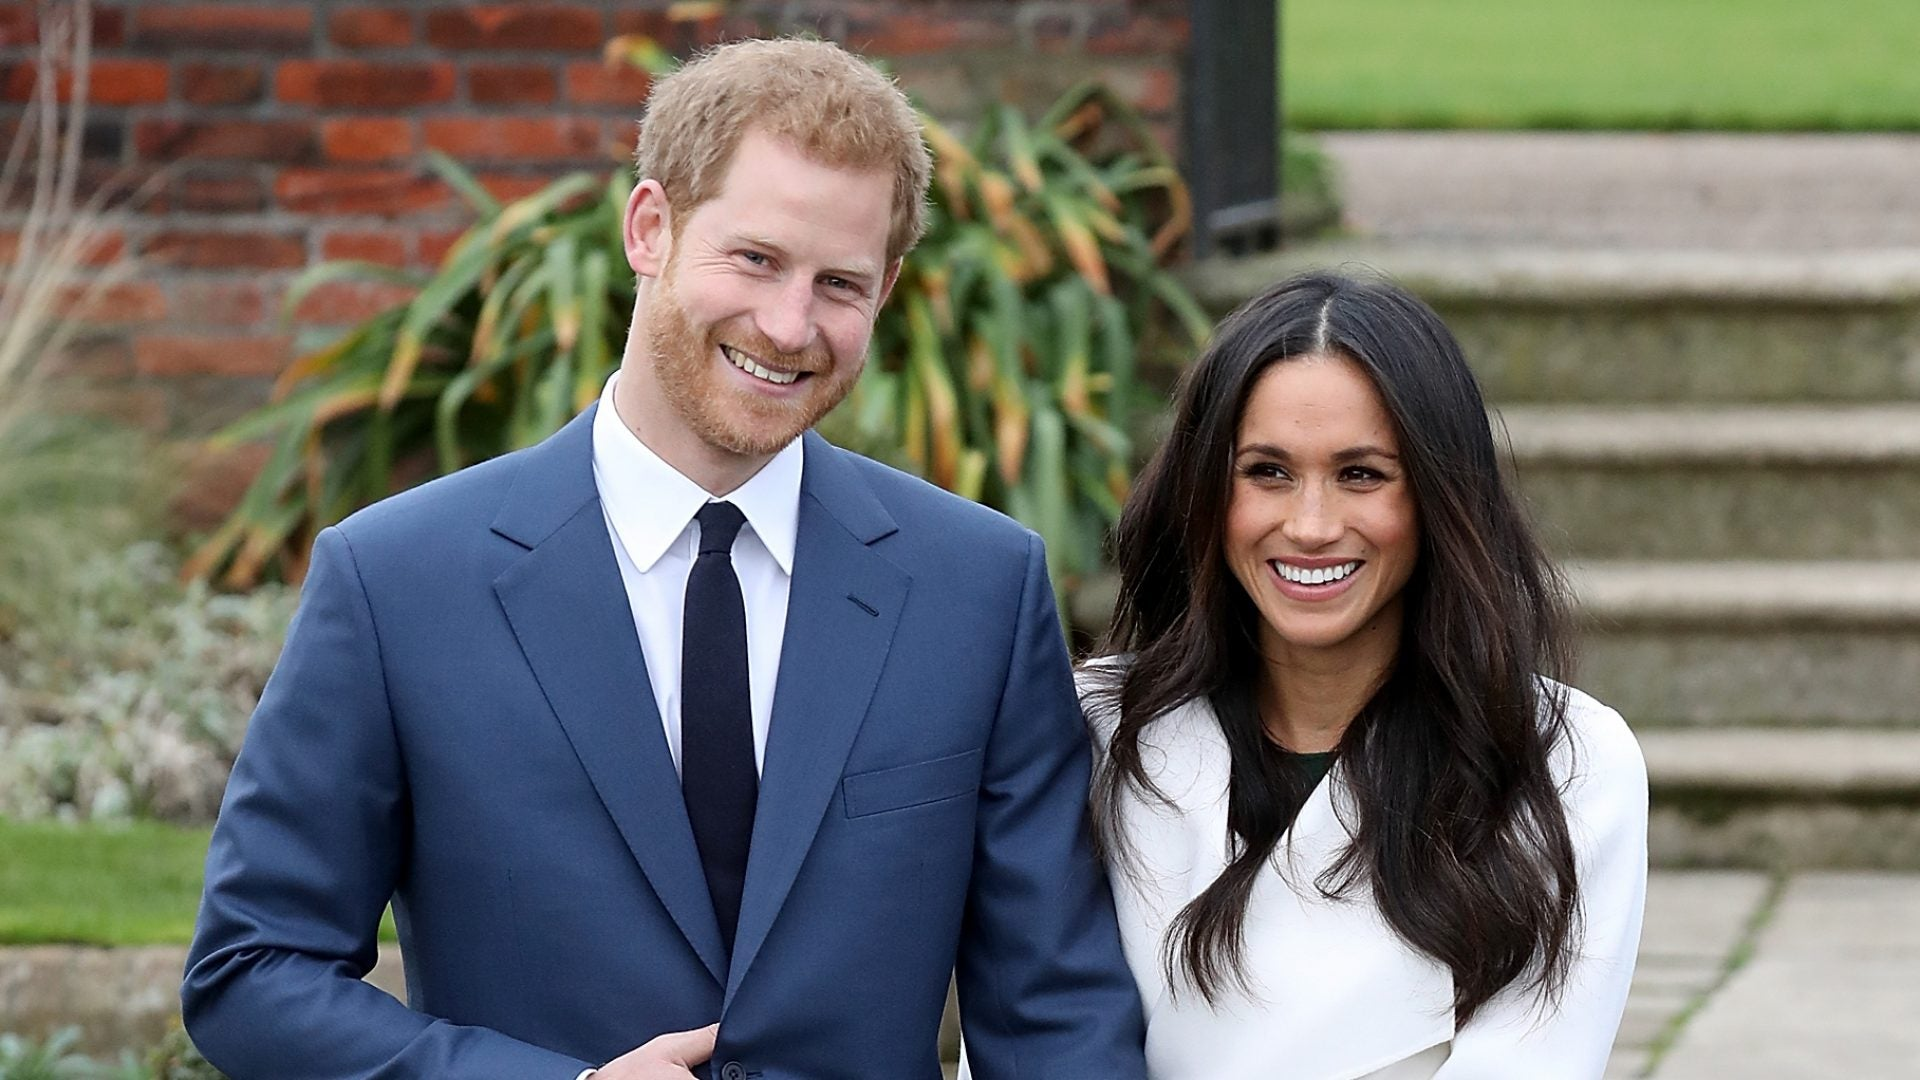 Opinion: Prince Harry And Meghan Markle Deserve A Fairy-Tale Ending Where They Are Celebrated, Not Tolerated